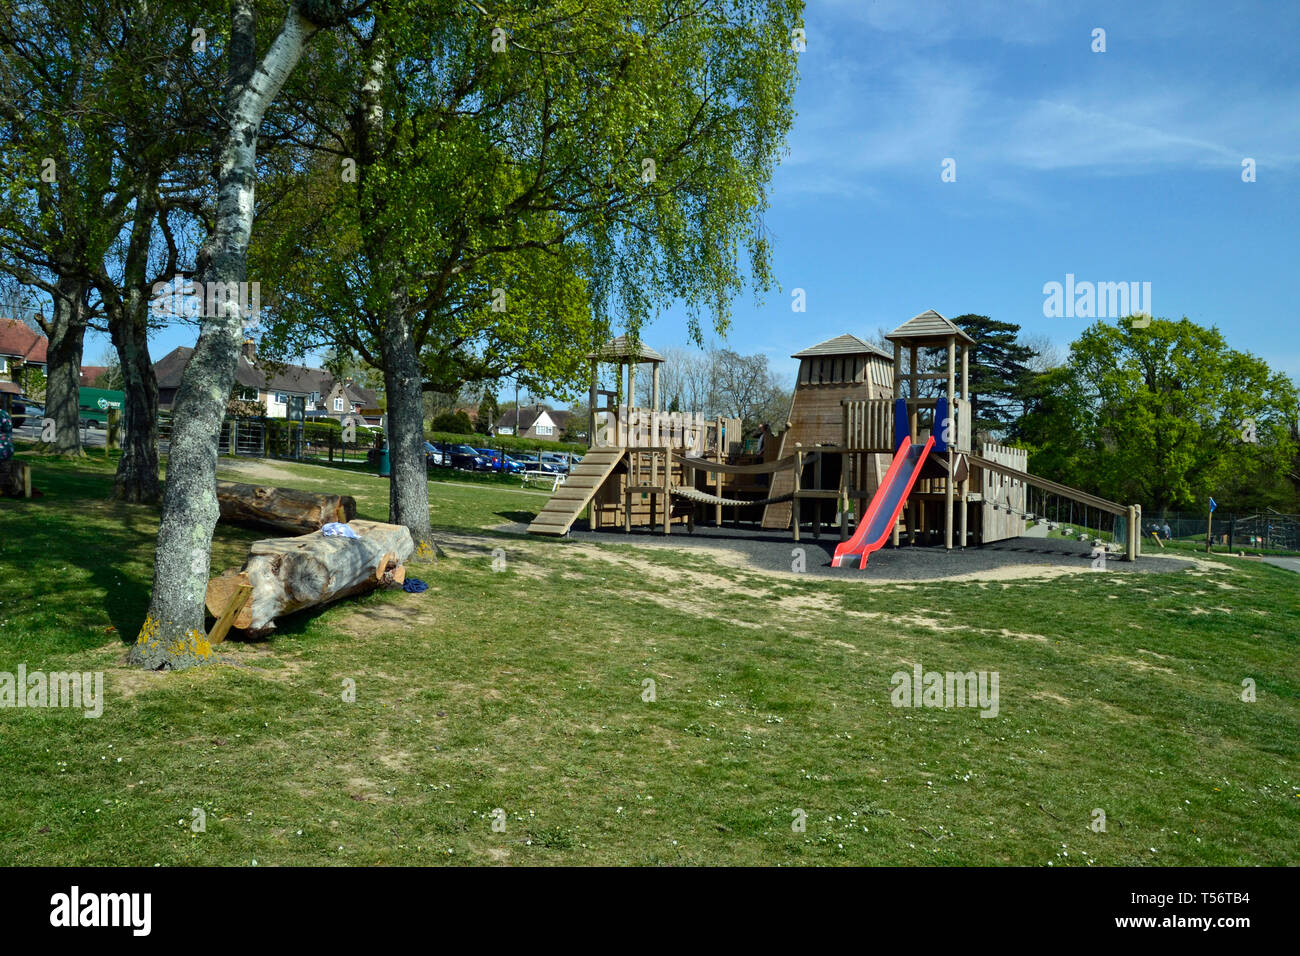 Castle play equipment in Battle Recreation Ground, Battle, East Sussex, UK Stock Photo